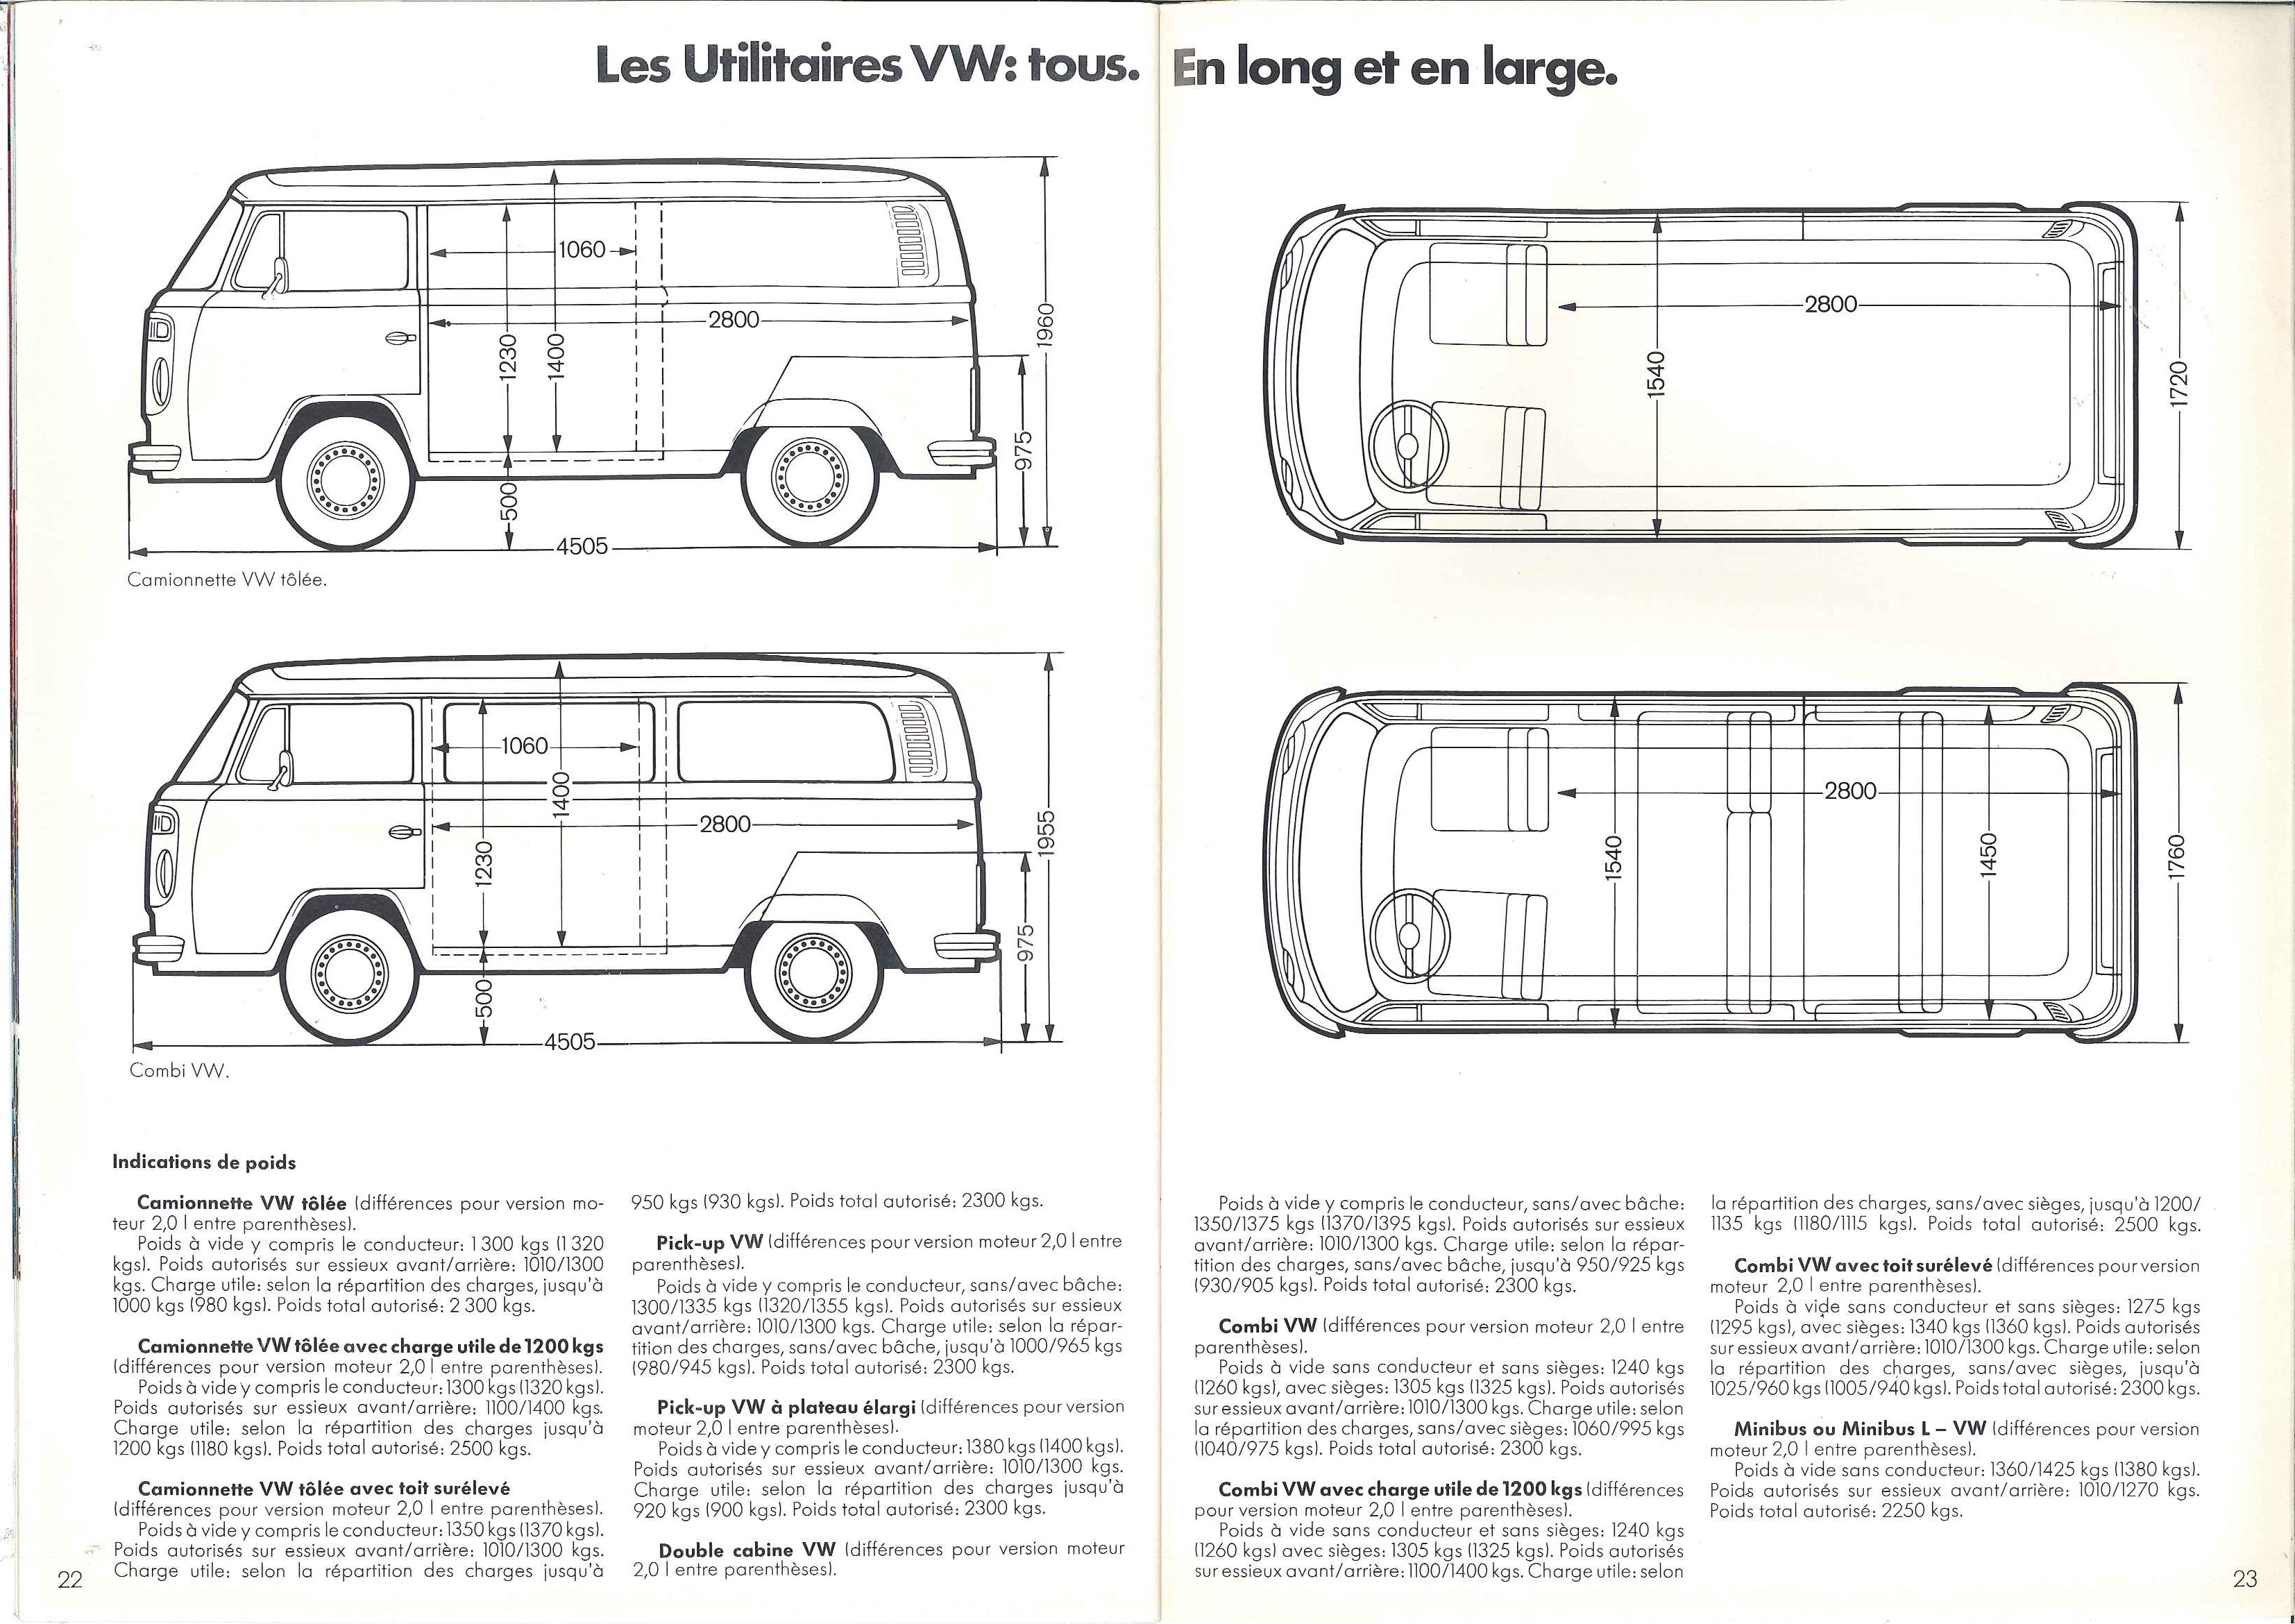 71 chevelle ss dash wiring diagram animal cell labeled and functions thesamba com bay window bus view topic square footage image may have been reduced in size click to fullscreen